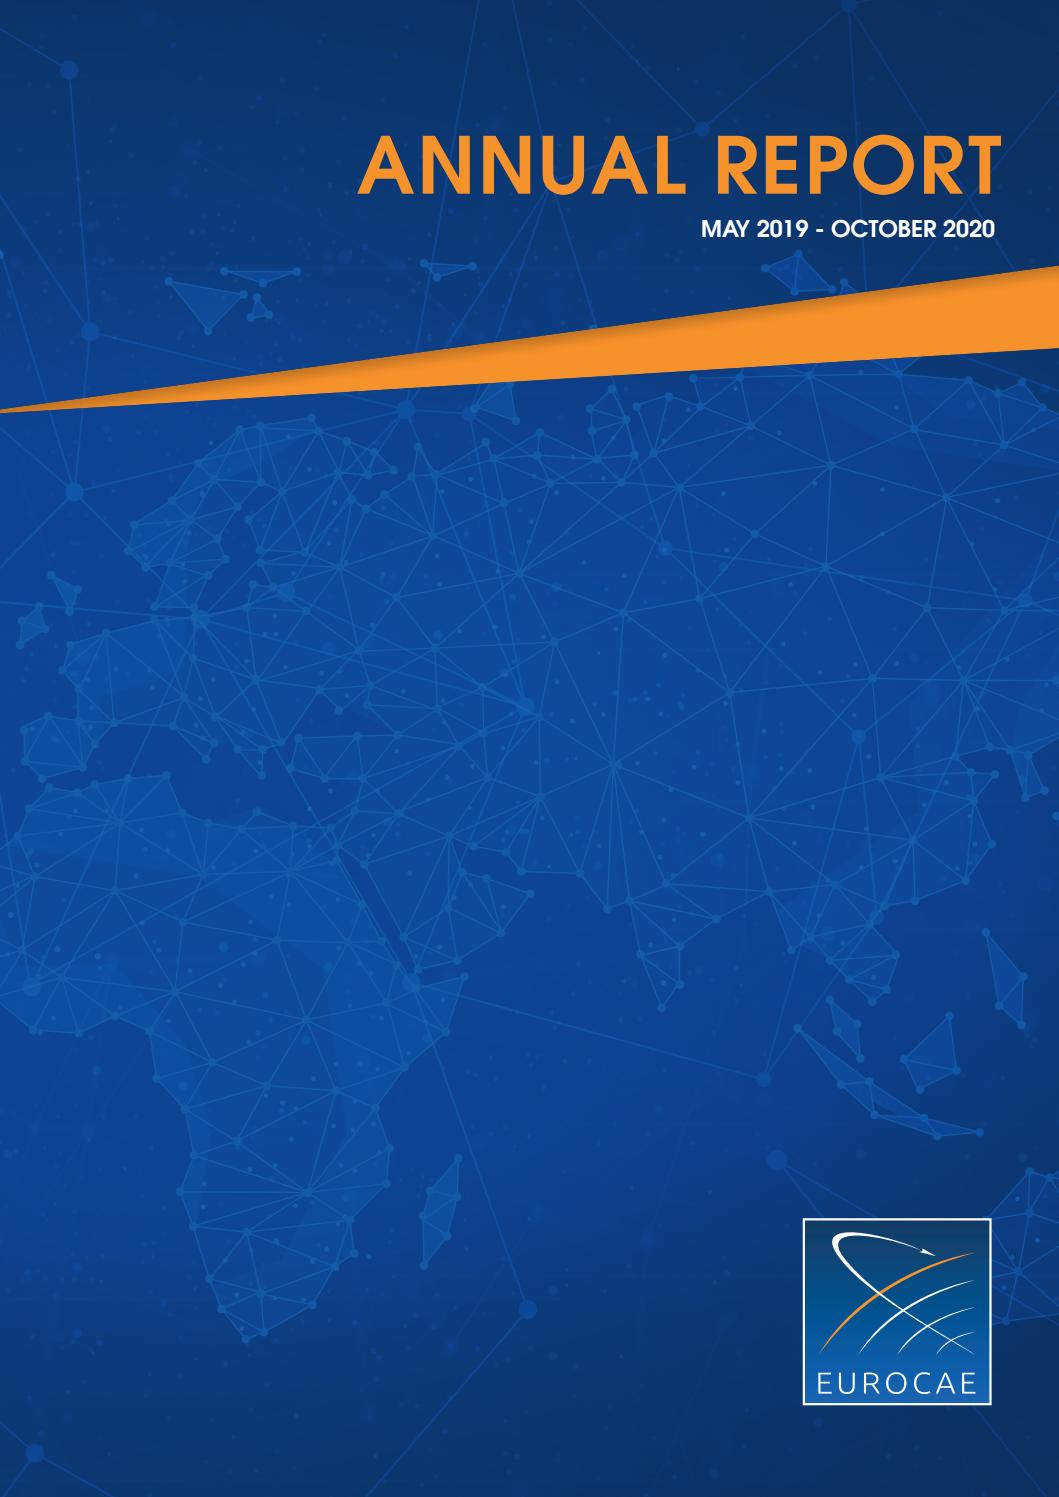 Eurocae Annual Report May 2019 October 2020 By Eurocae Issuu